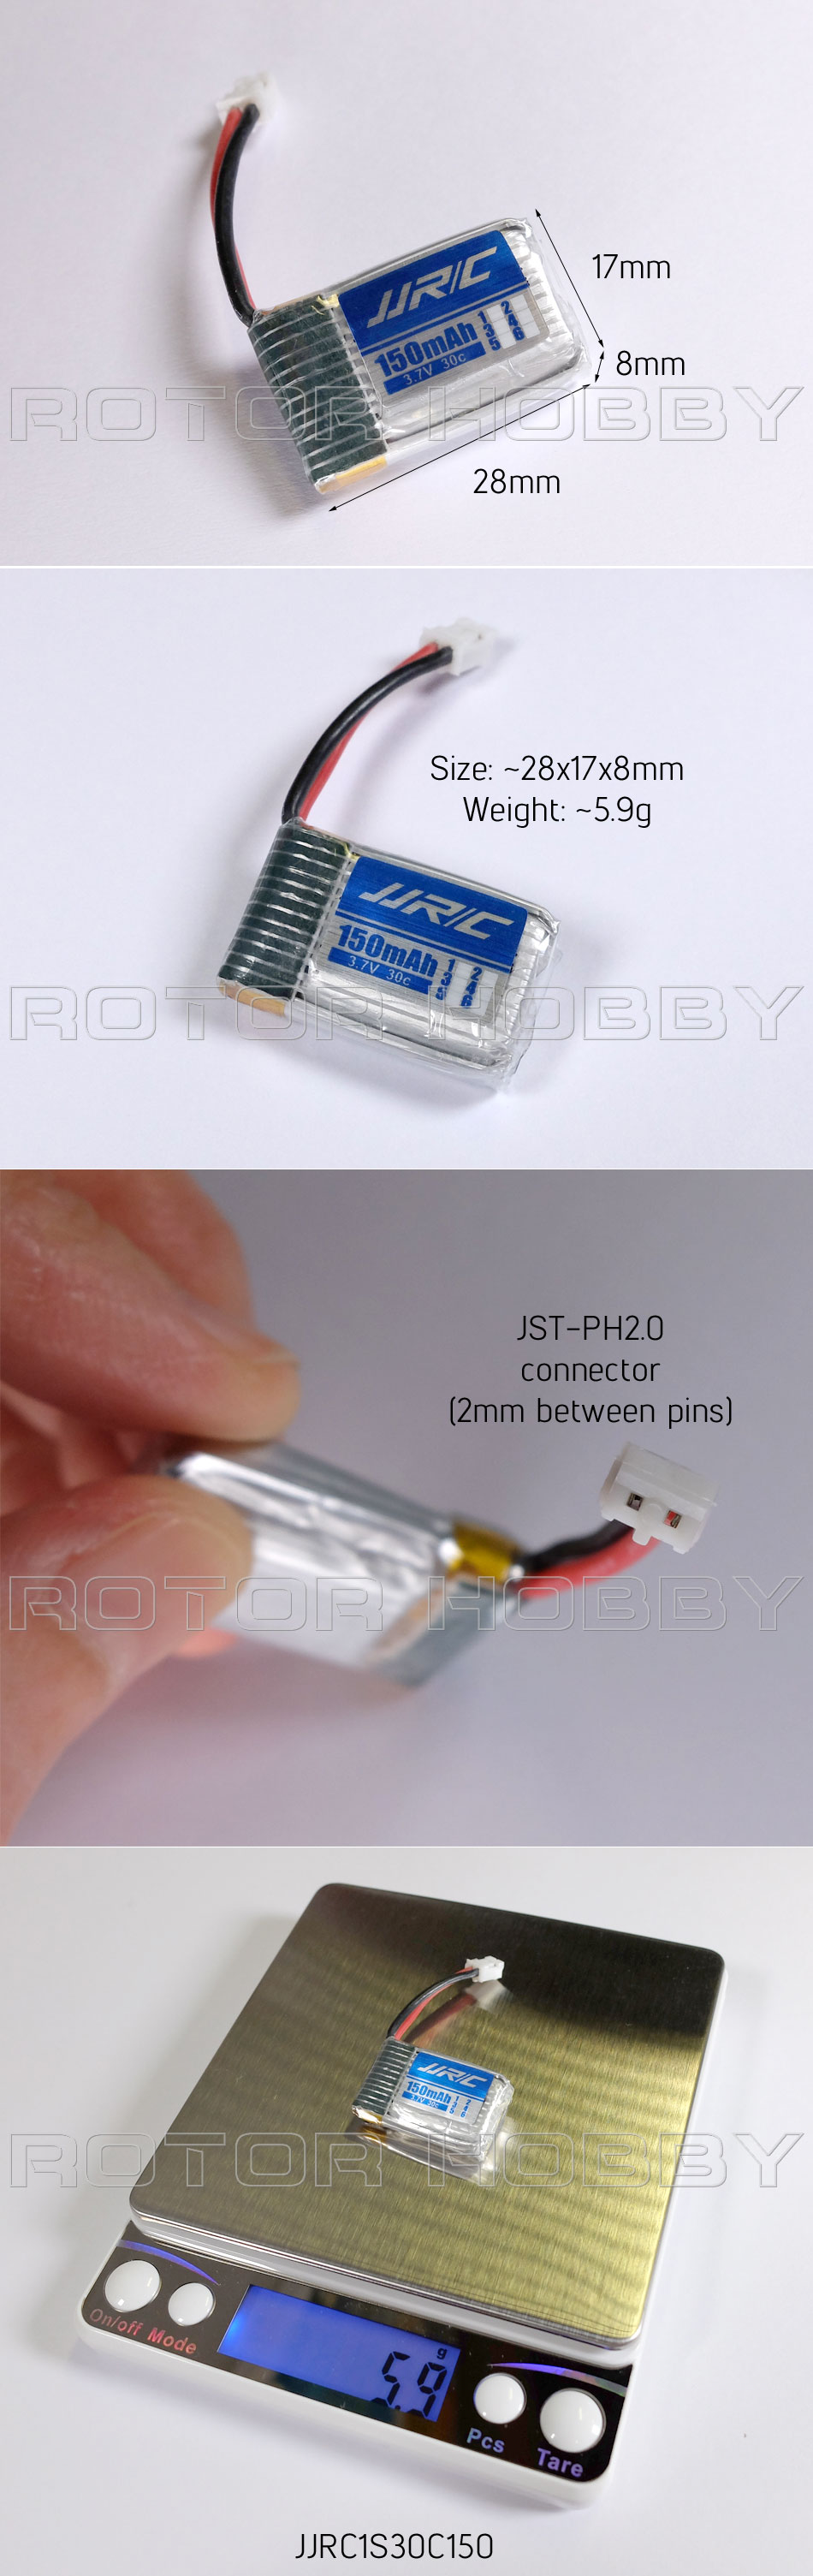 3.7V 150mAh 30C LiPo Battery with JST-PH2.0 connector